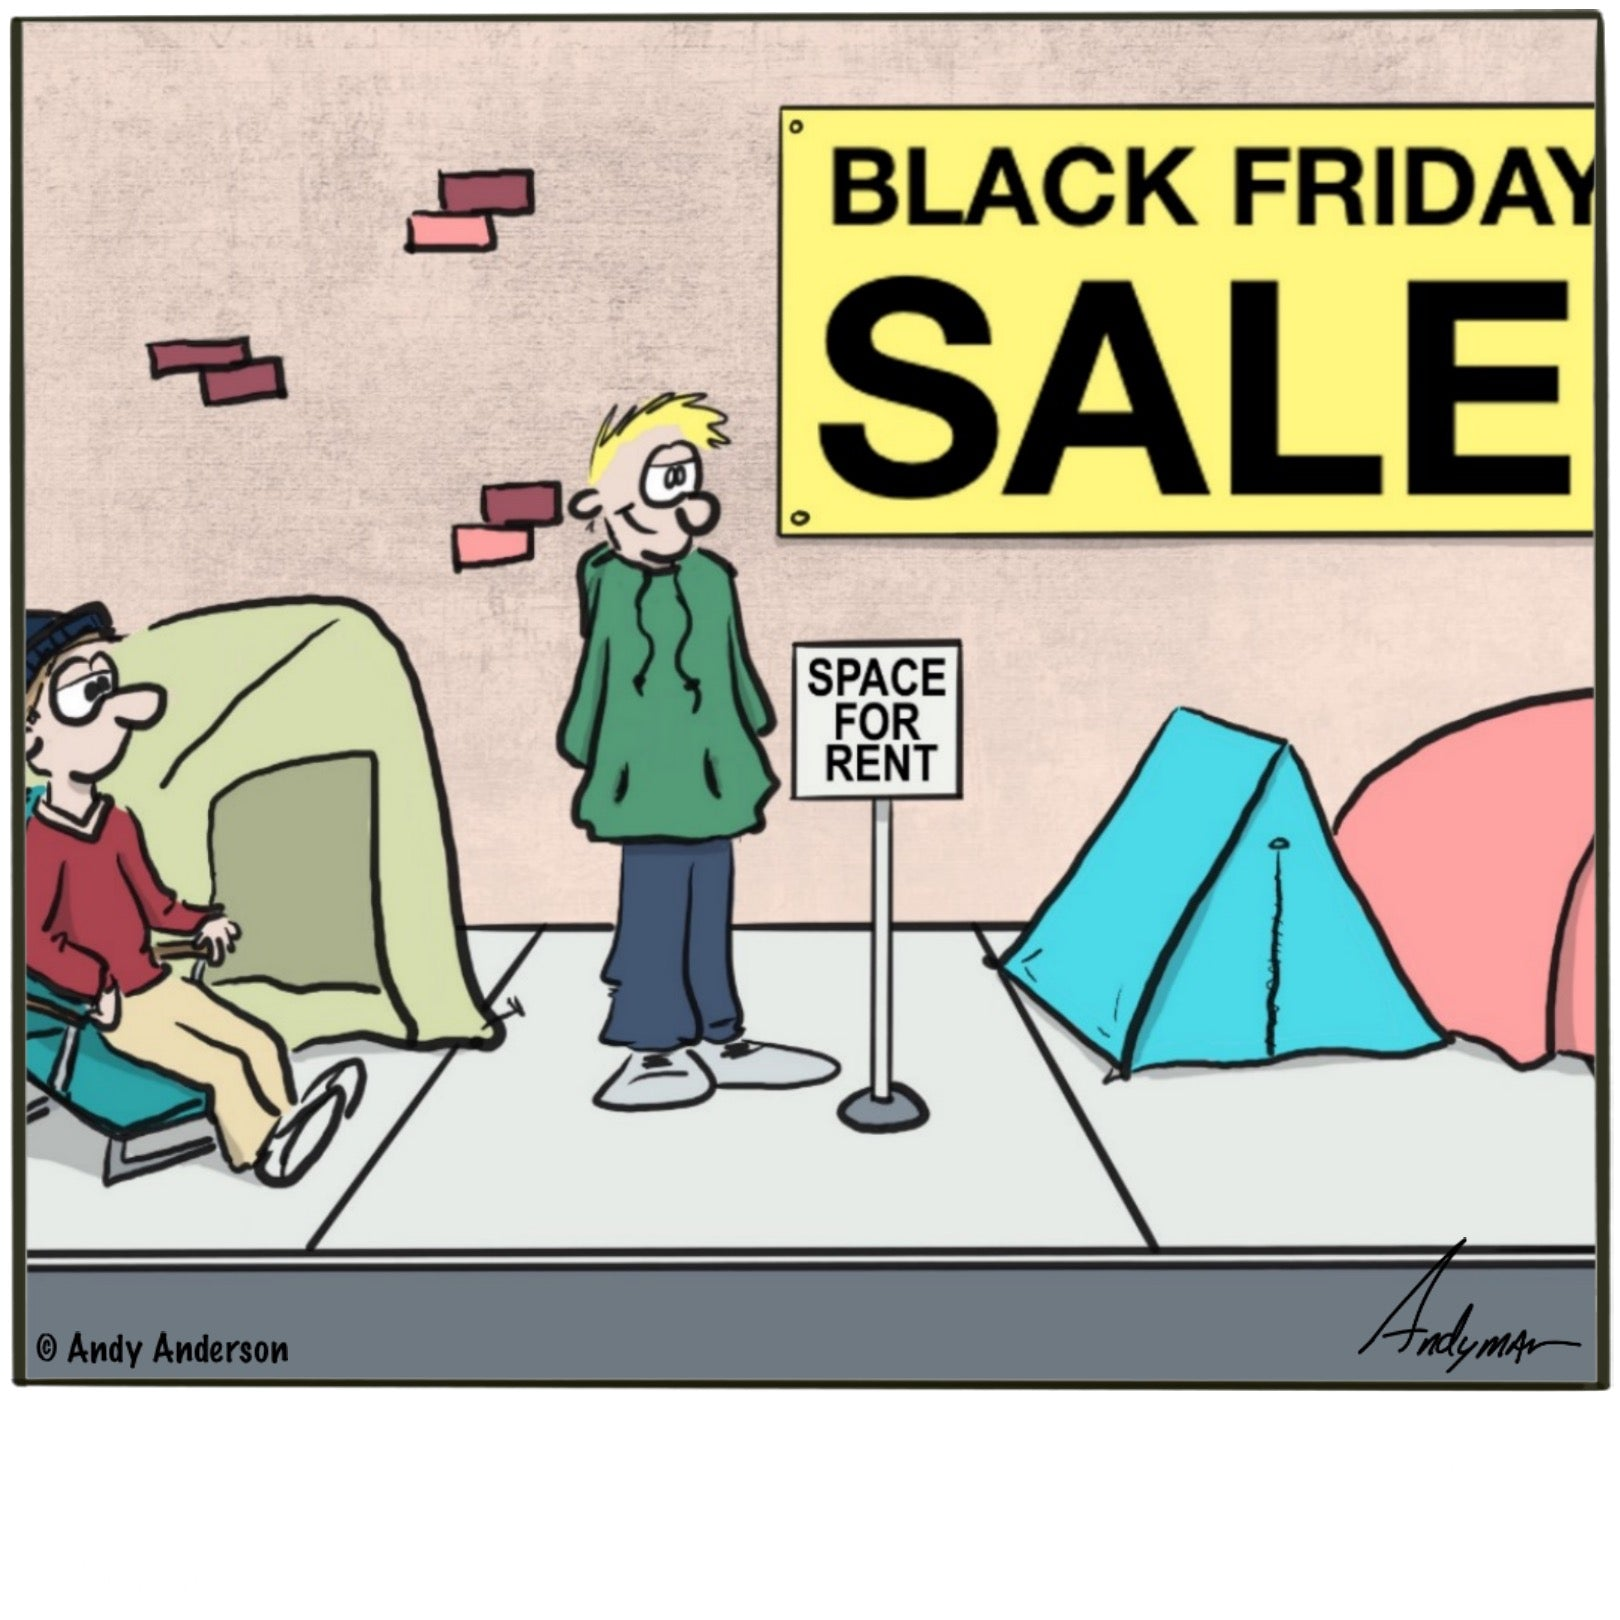 Black Friday space for rent cartoon by Andy Anderson